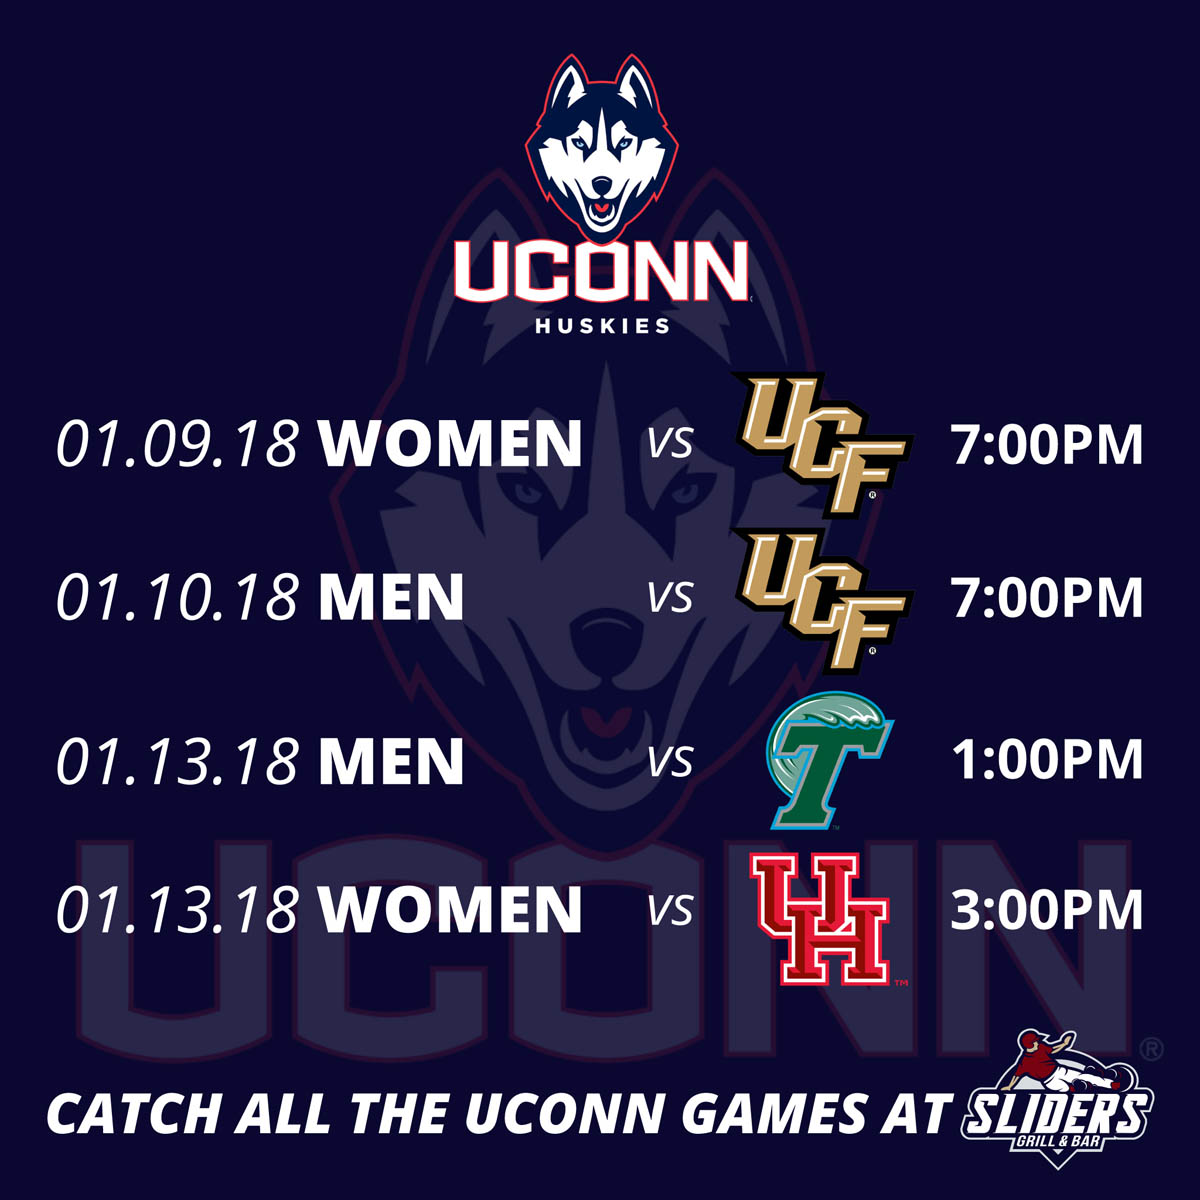 UCONN-Basketball-Week-2018-01-08